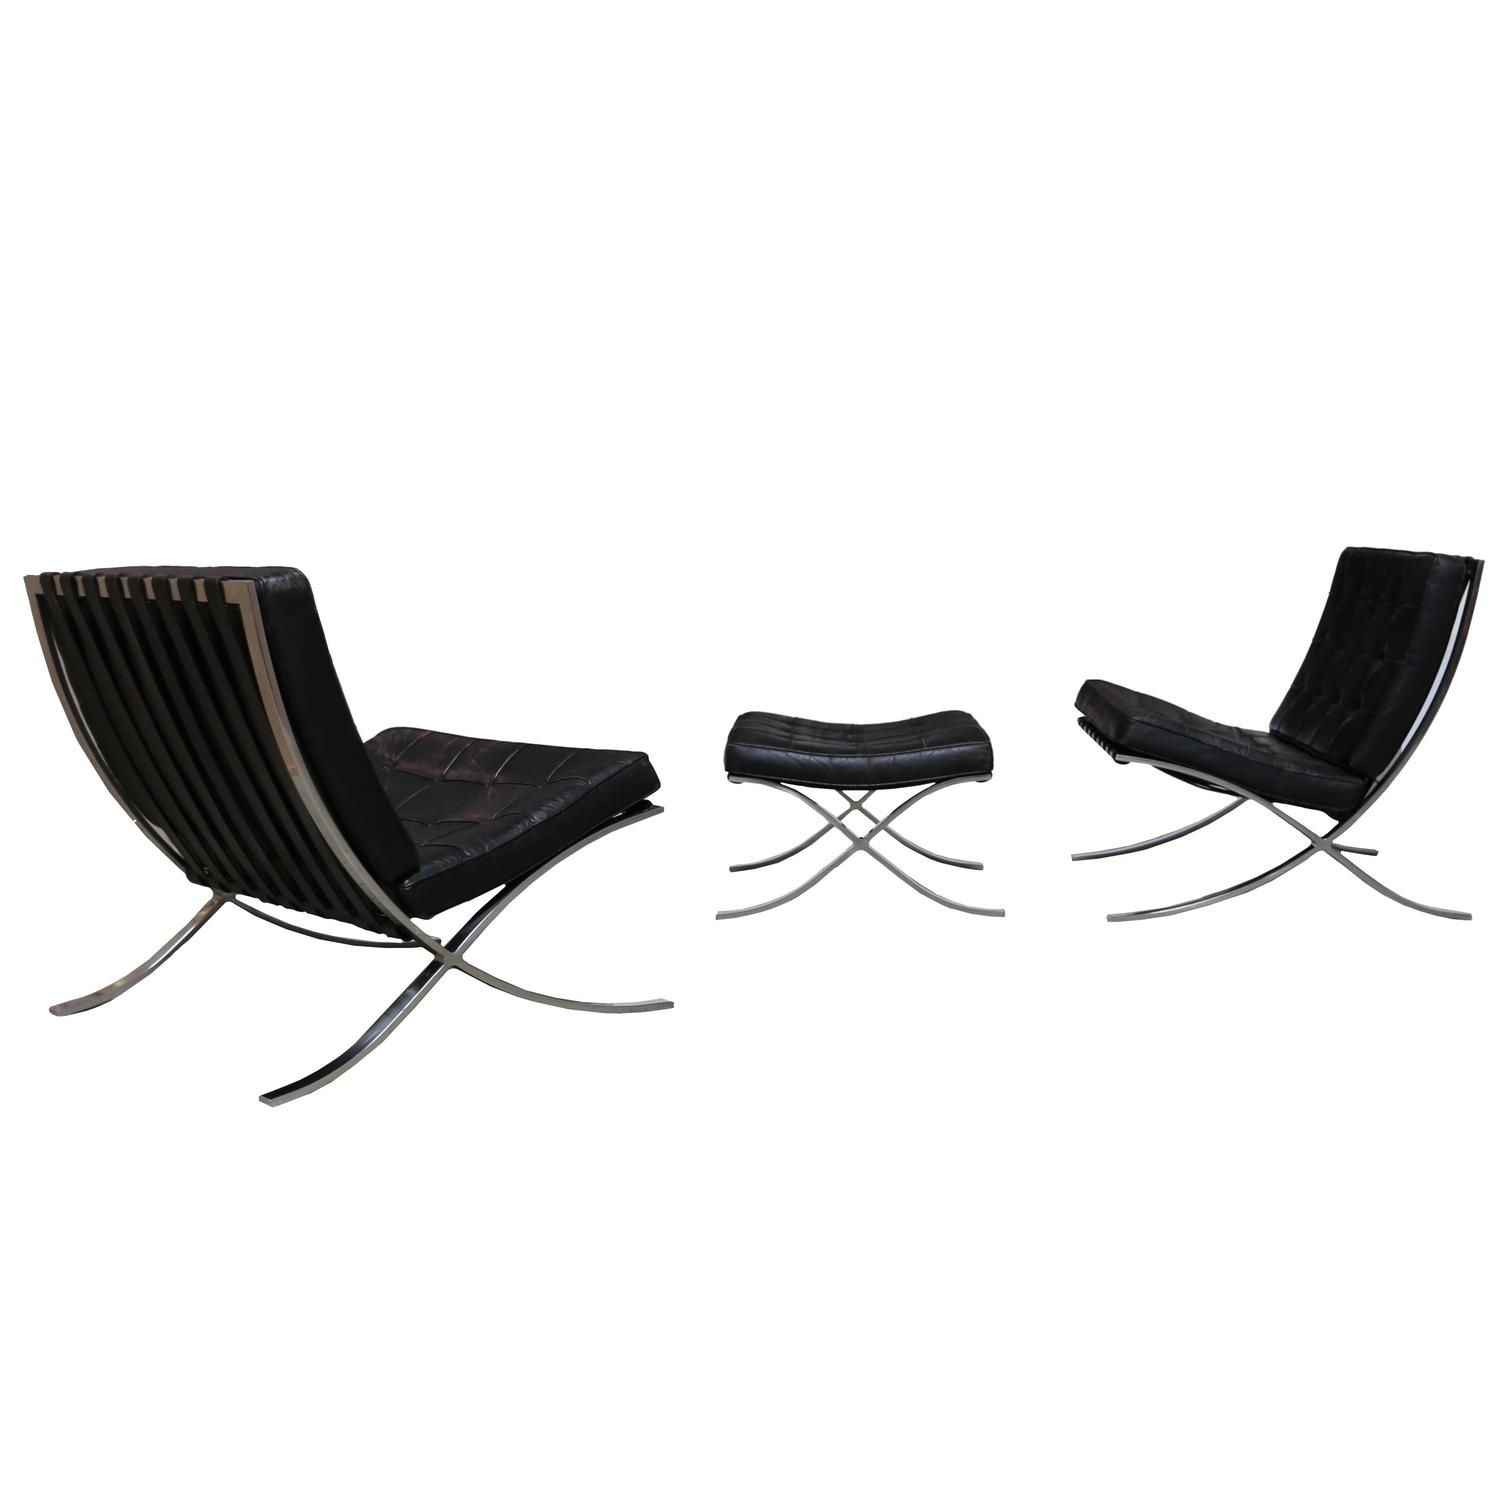 pair of knoll 1972 barcelona chairs with ottoman by mies van der rohe for sale at 1stdibs. Black Bedroom Furniture Sets. Home Design Ideas